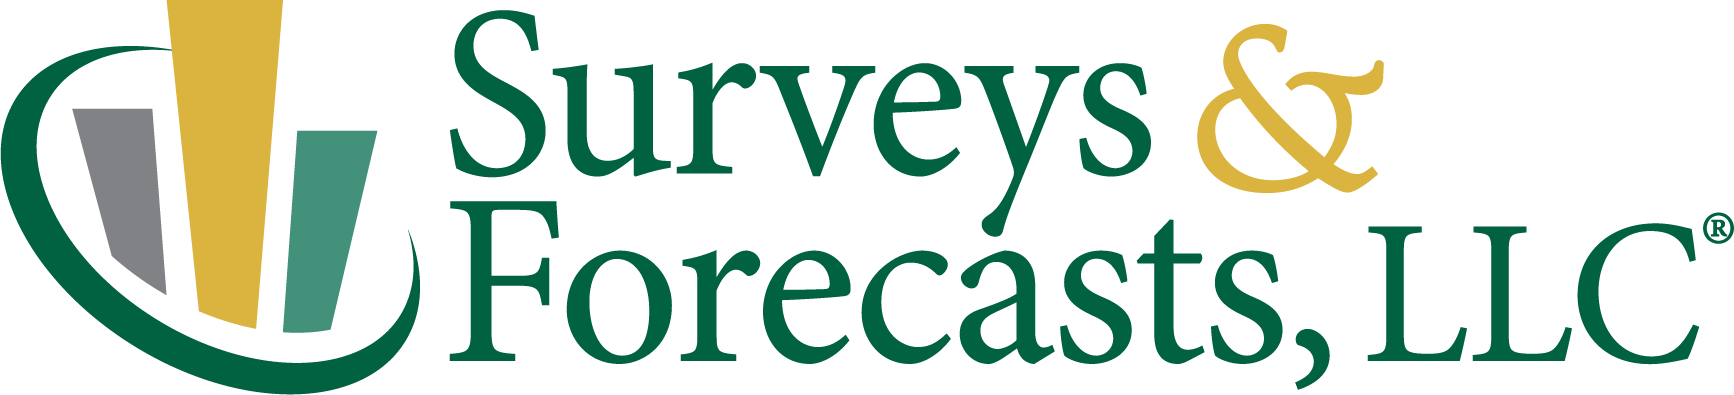 Surveys & Forecasts, LLC